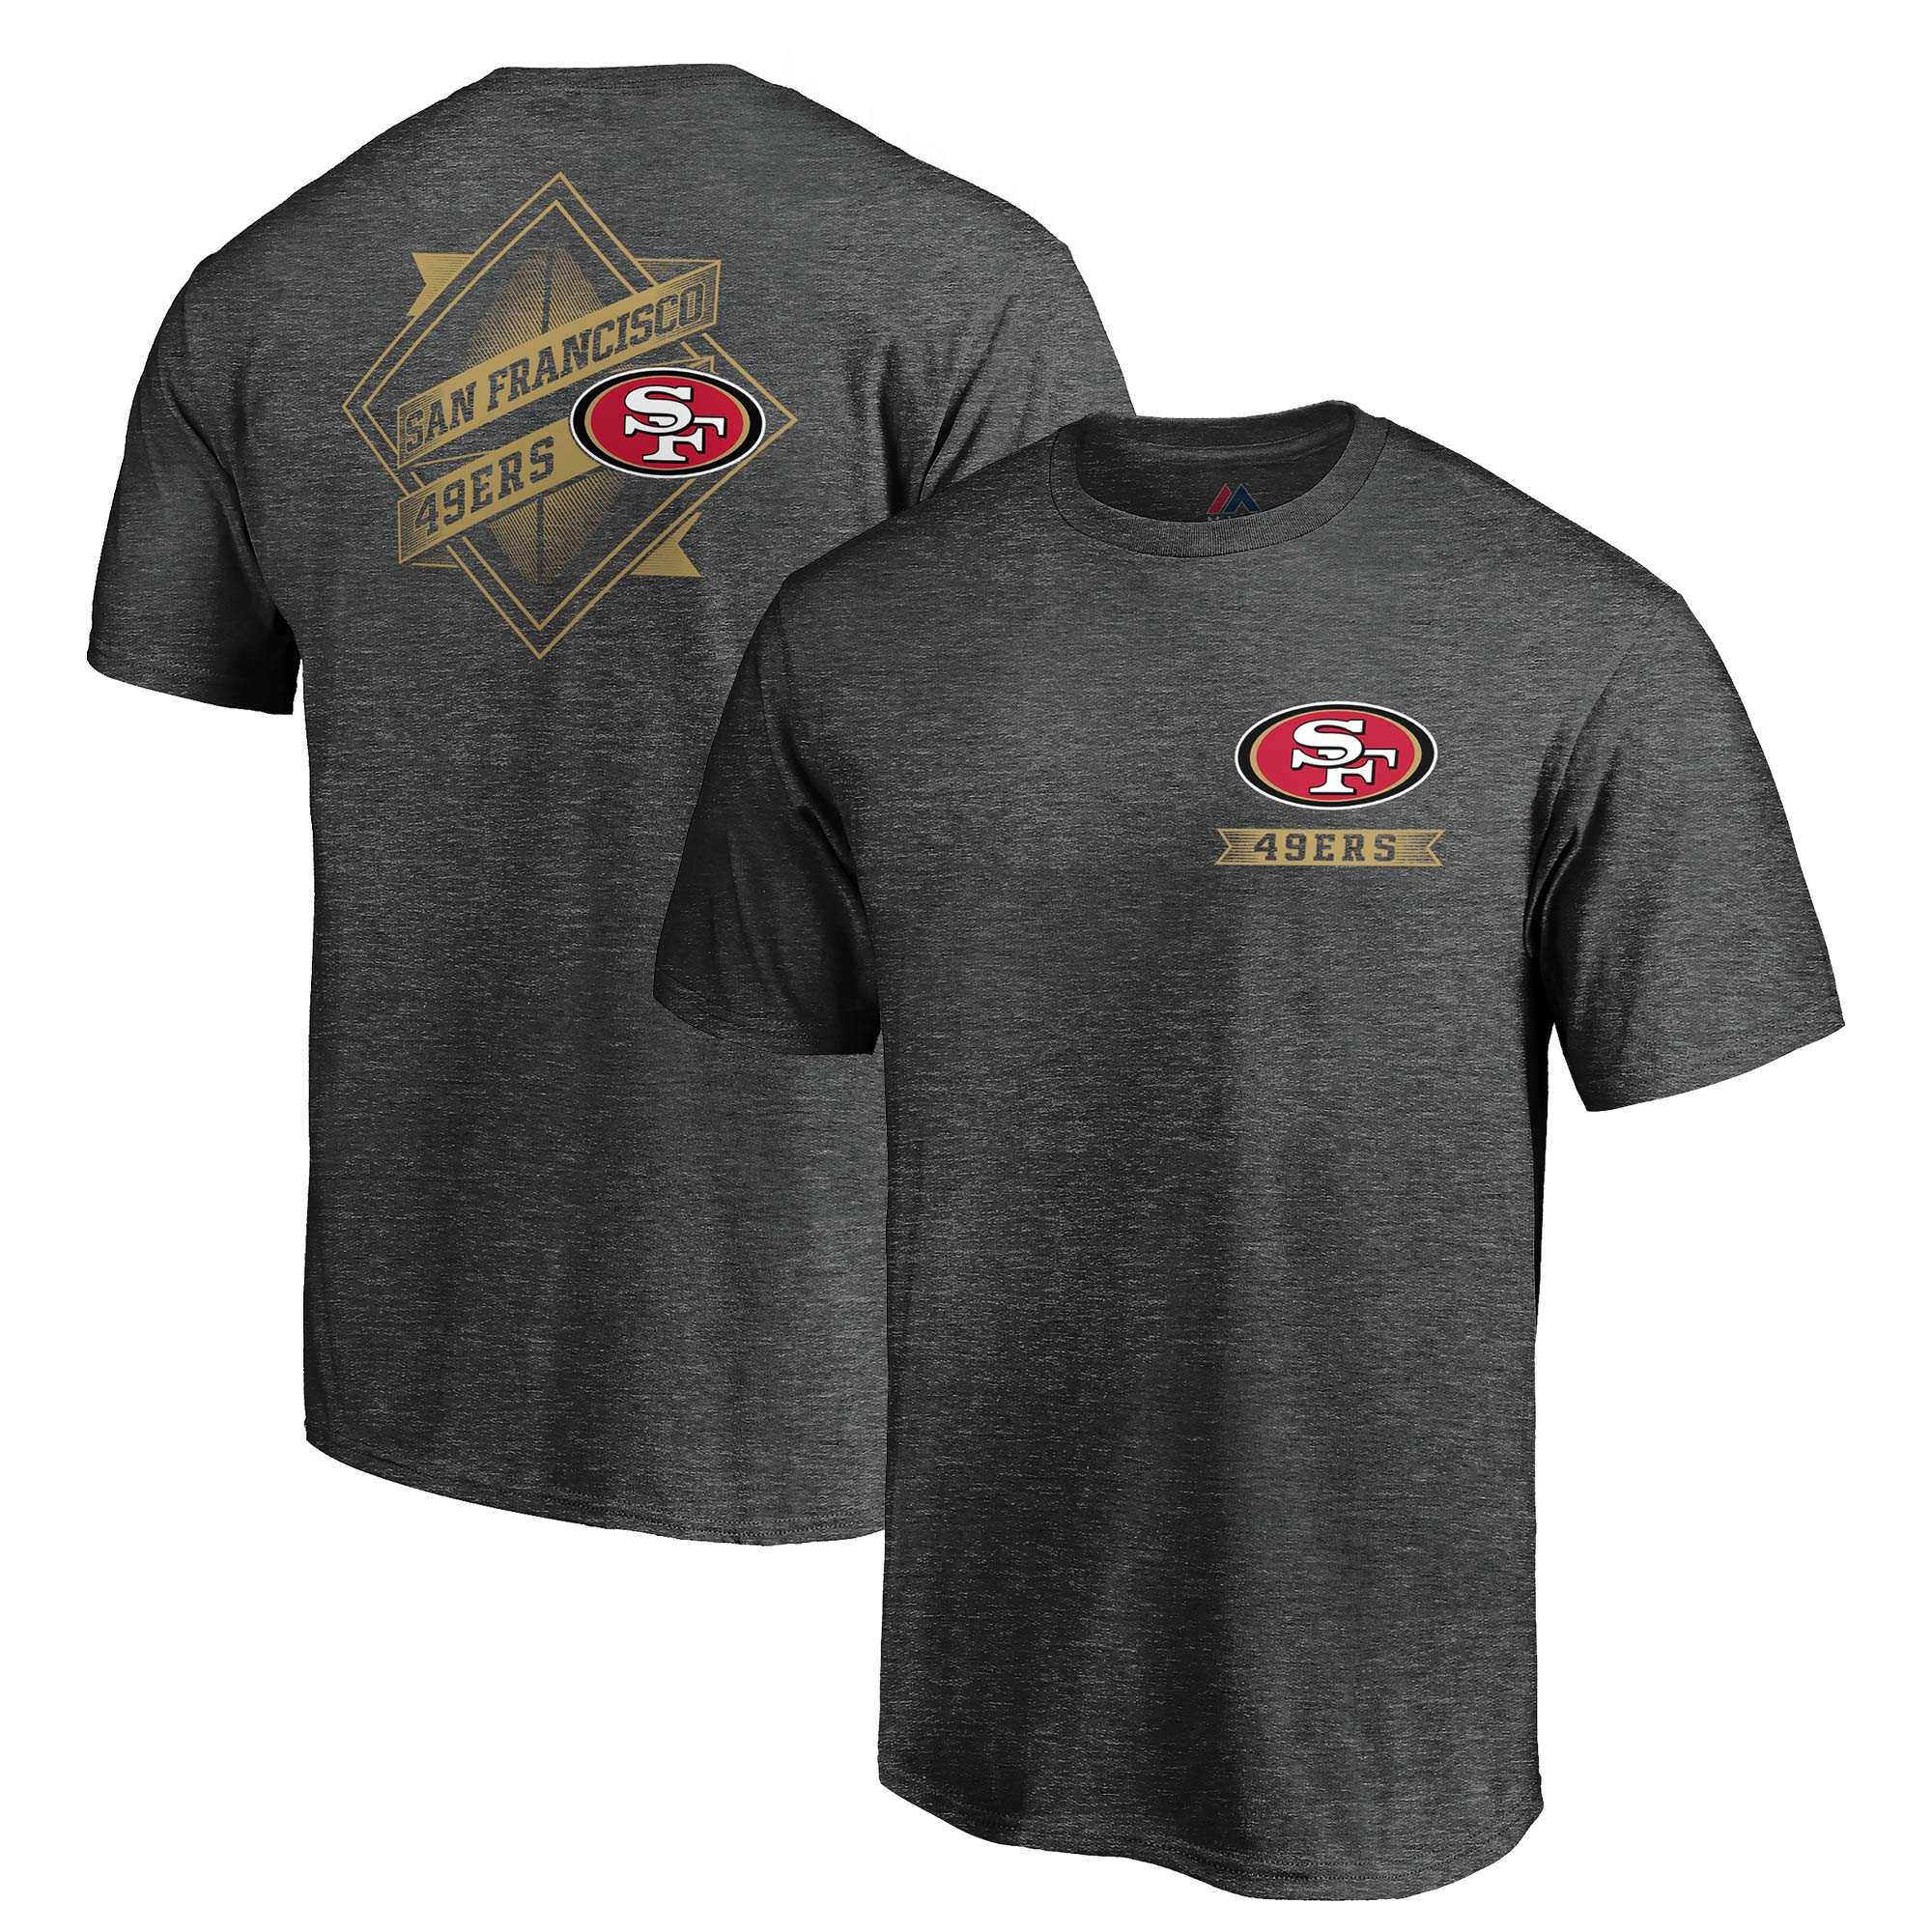 San Francisco 49ers Majestic Iconic Diamond Scroll T-Shirt - Heathered Charcoal